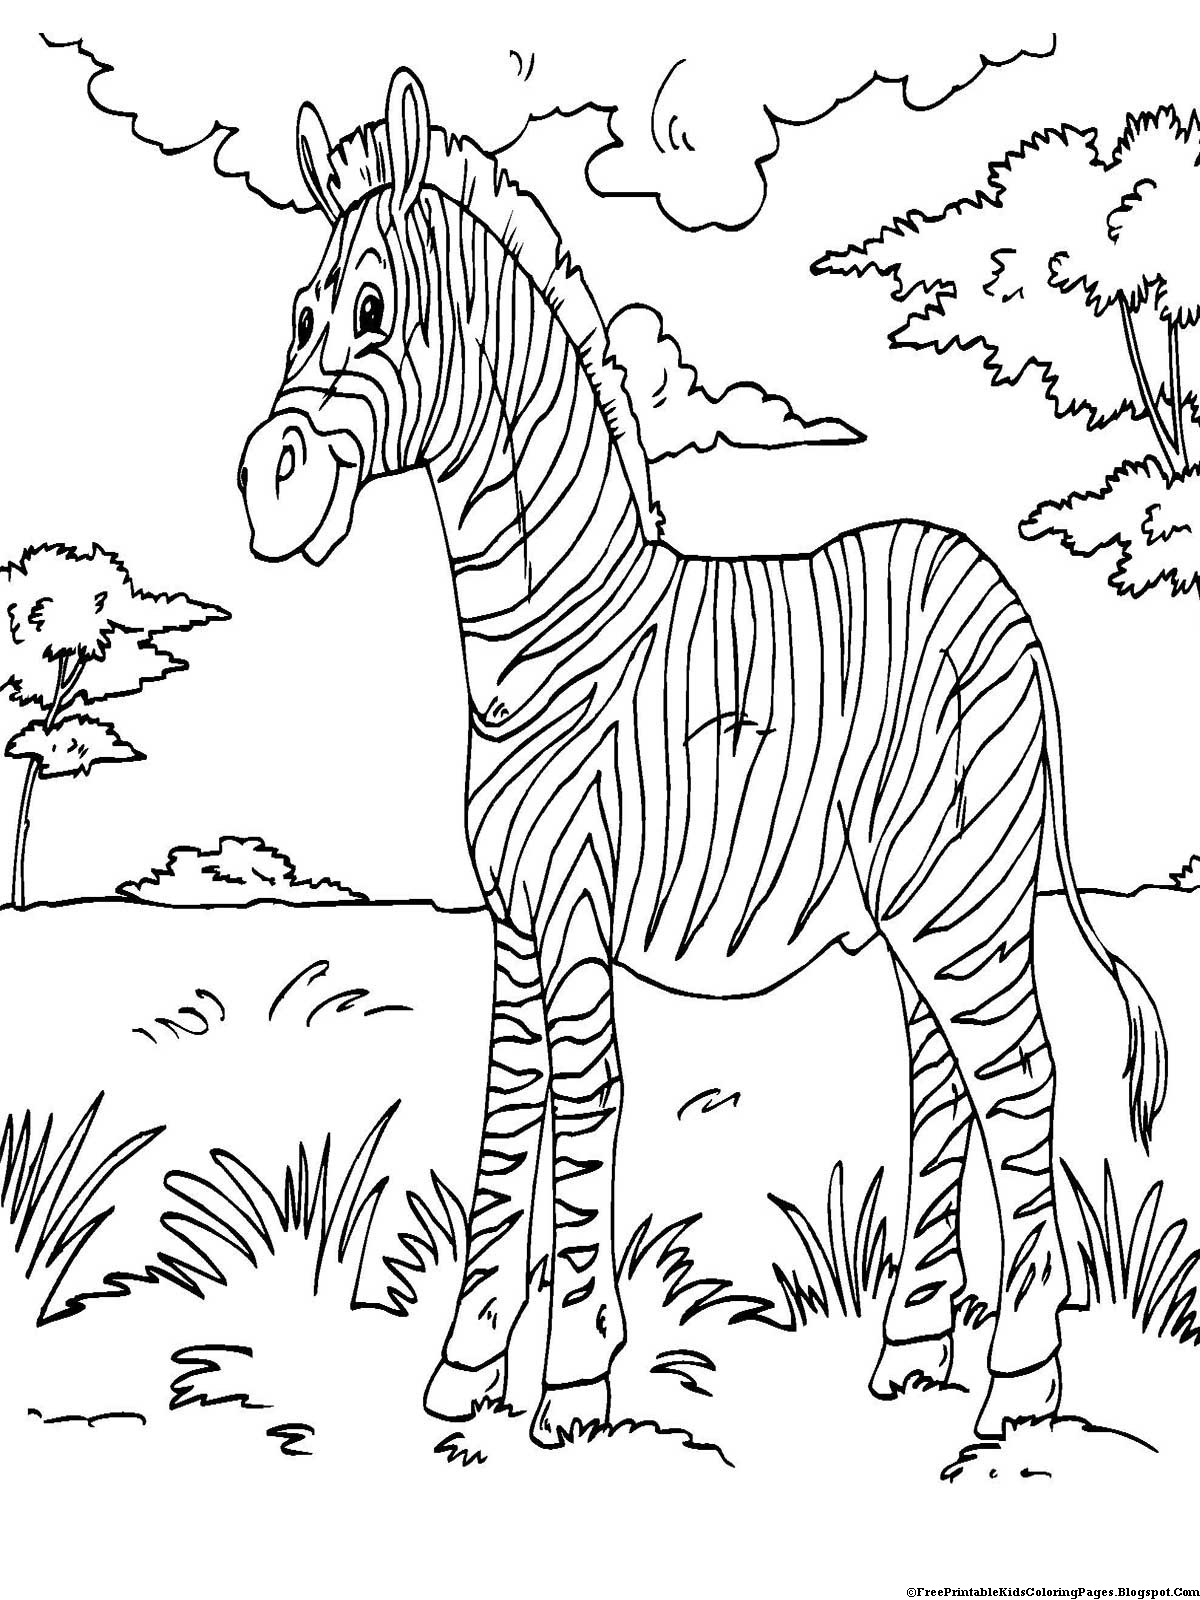 coloring pages for print zebra coloring pages free printable kids coloring pages pages for print coloring